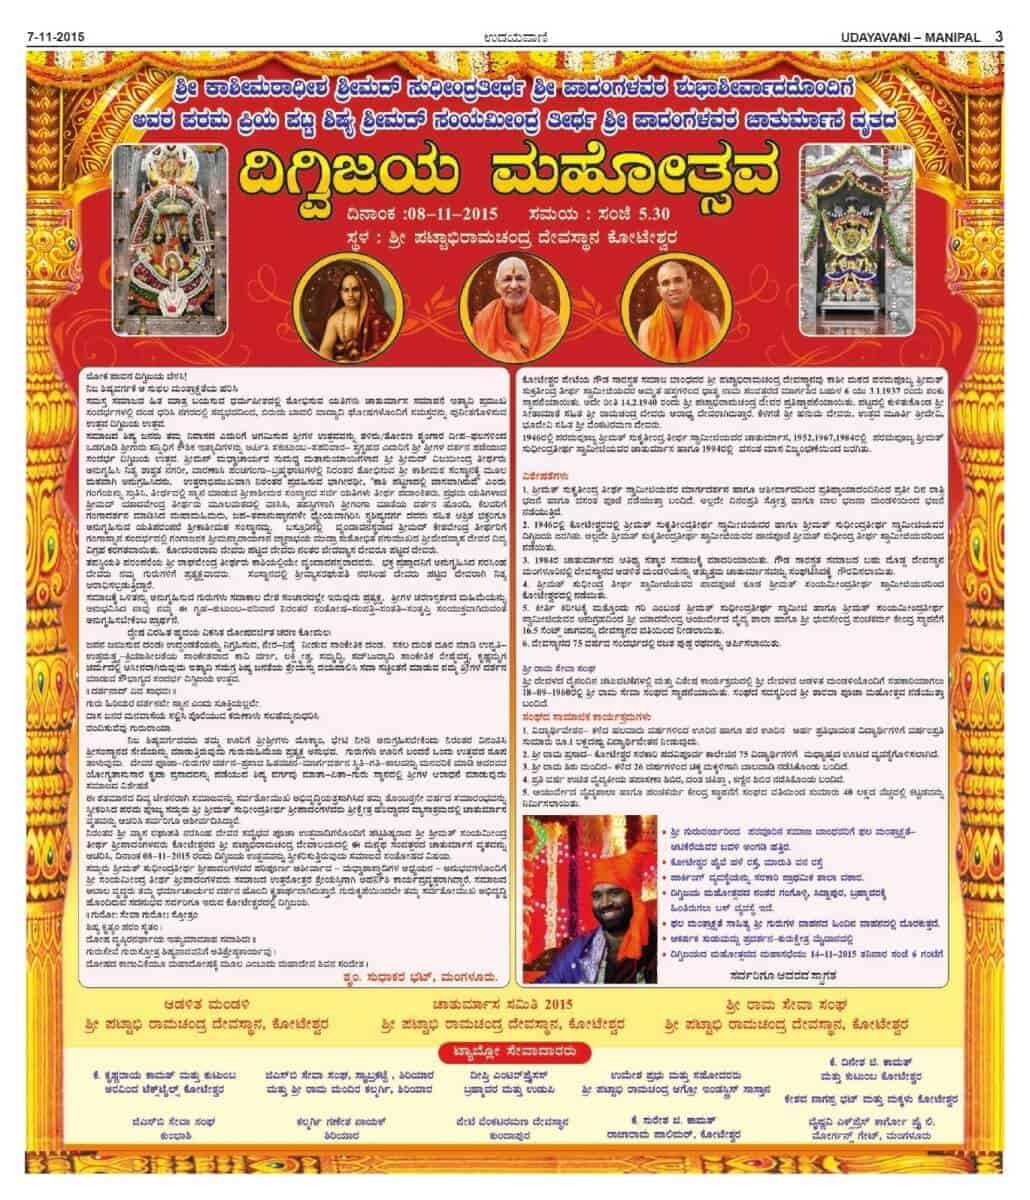 Image from post regarding Digvijaya Mahotsava in Koteshwara